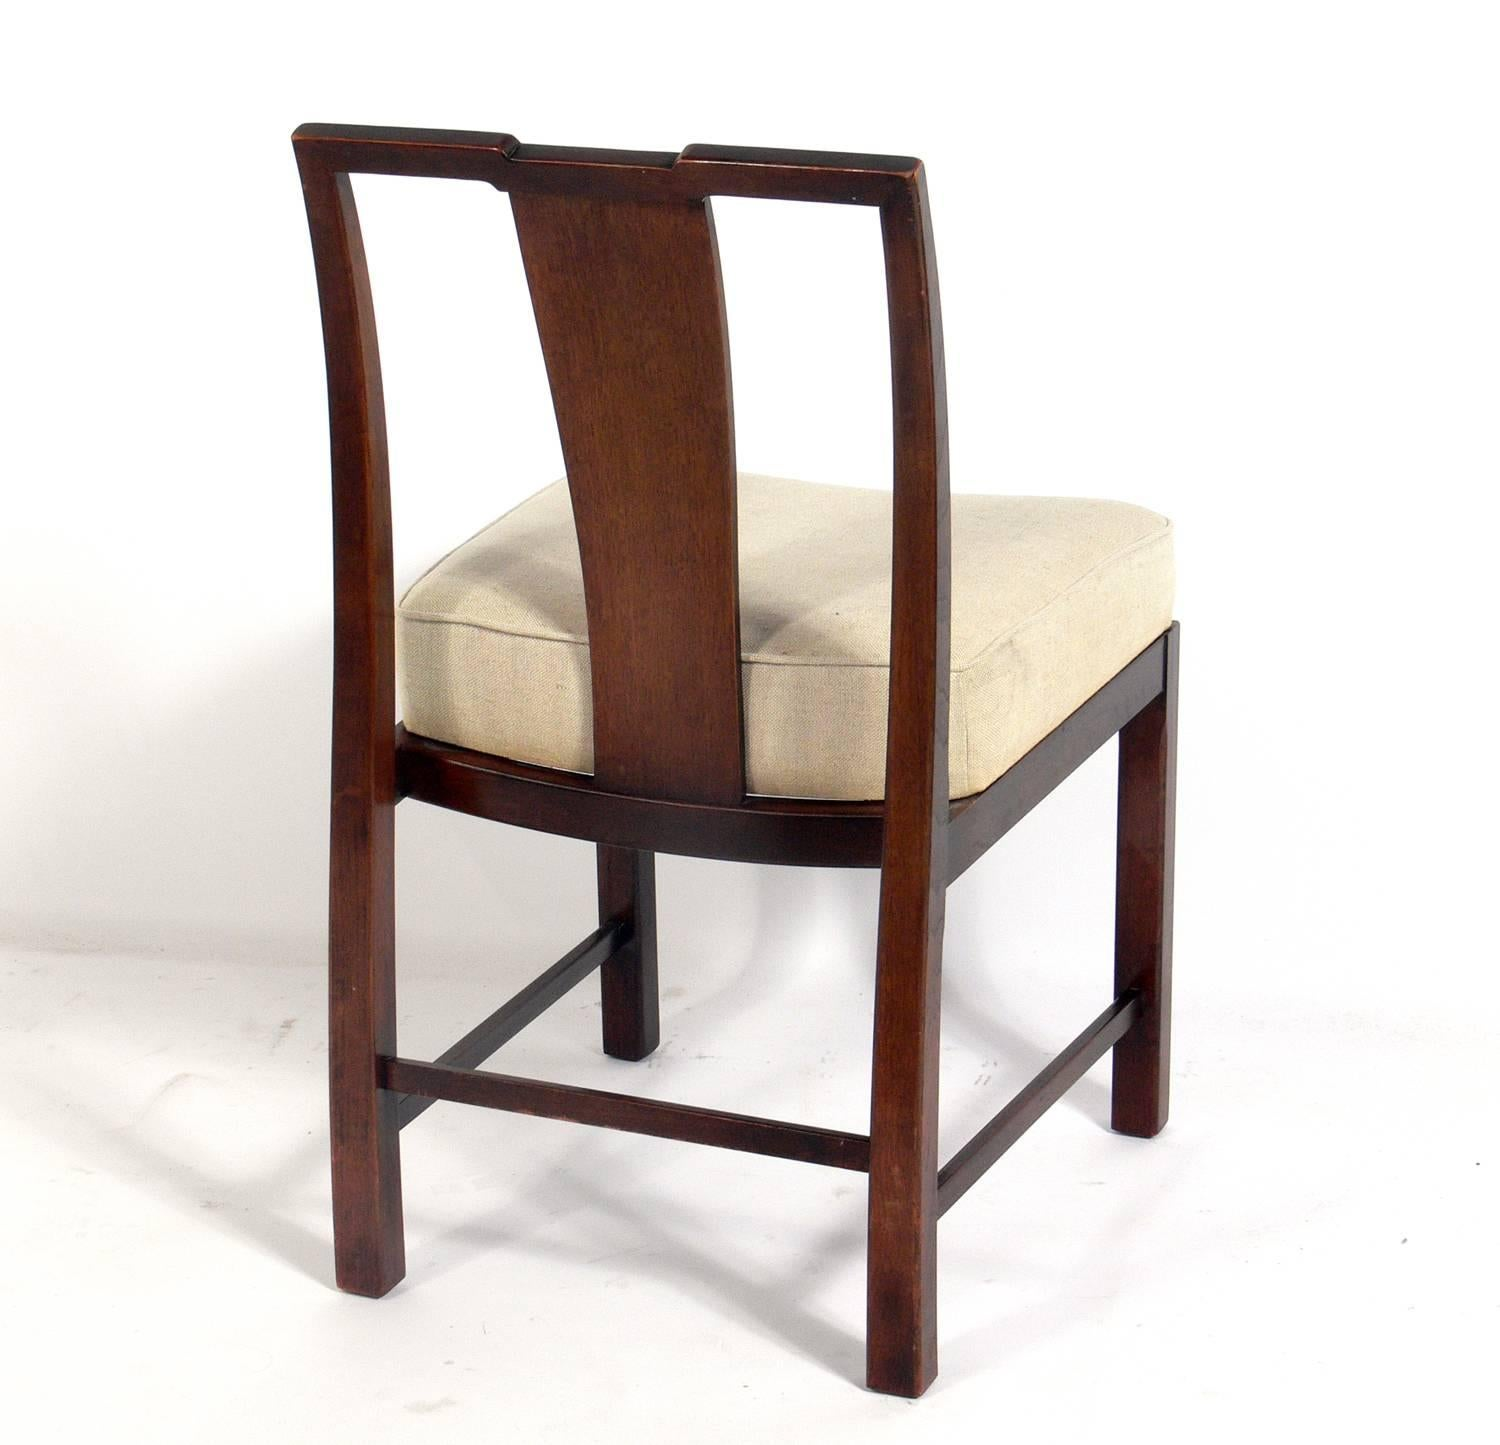 Michael Taylor Asian Inspired Dining Chairs At 1stdibs